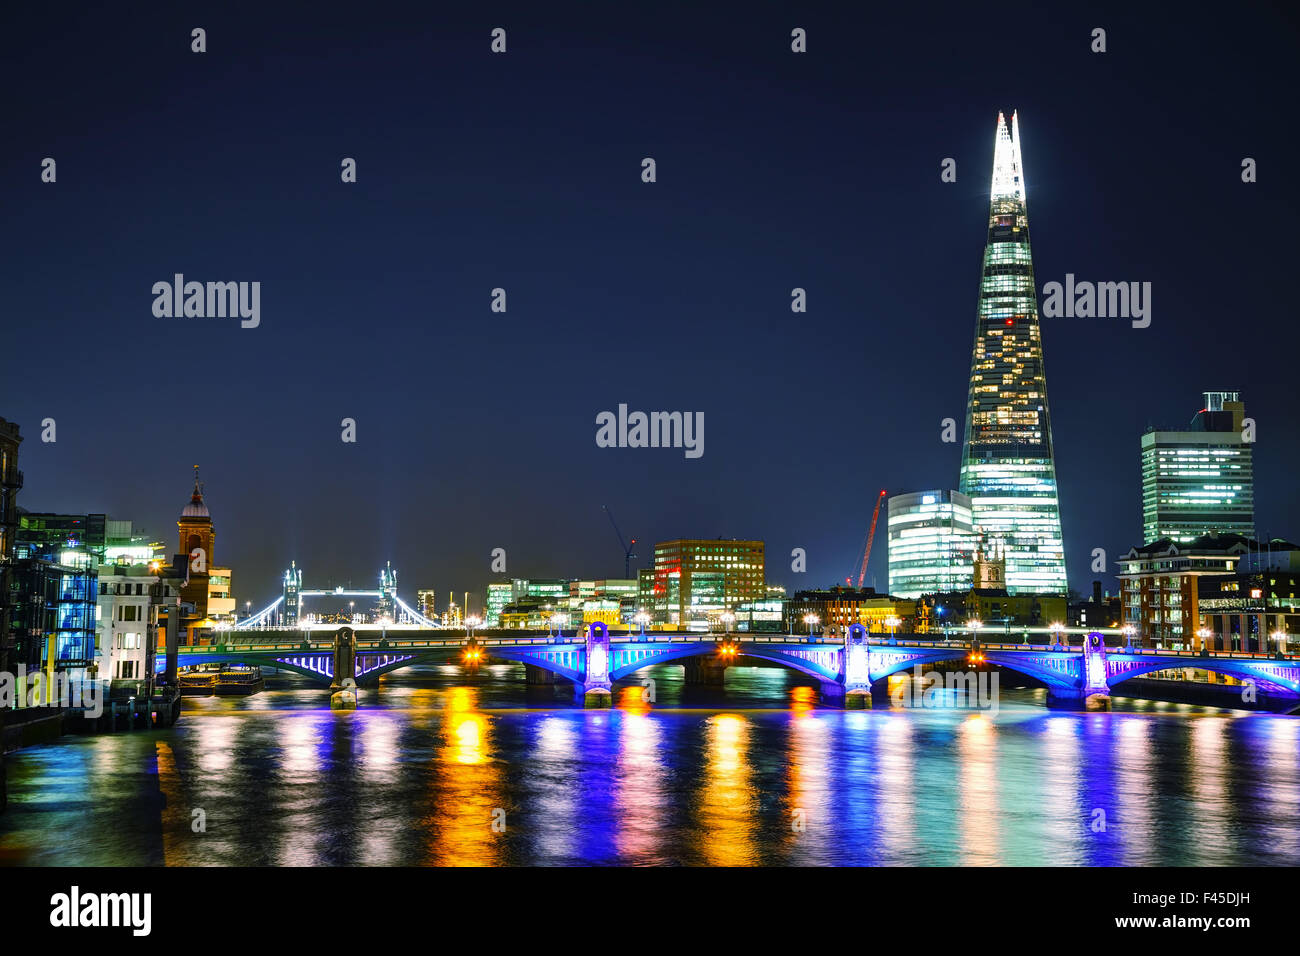 Financial district of the City of London - Stock Image